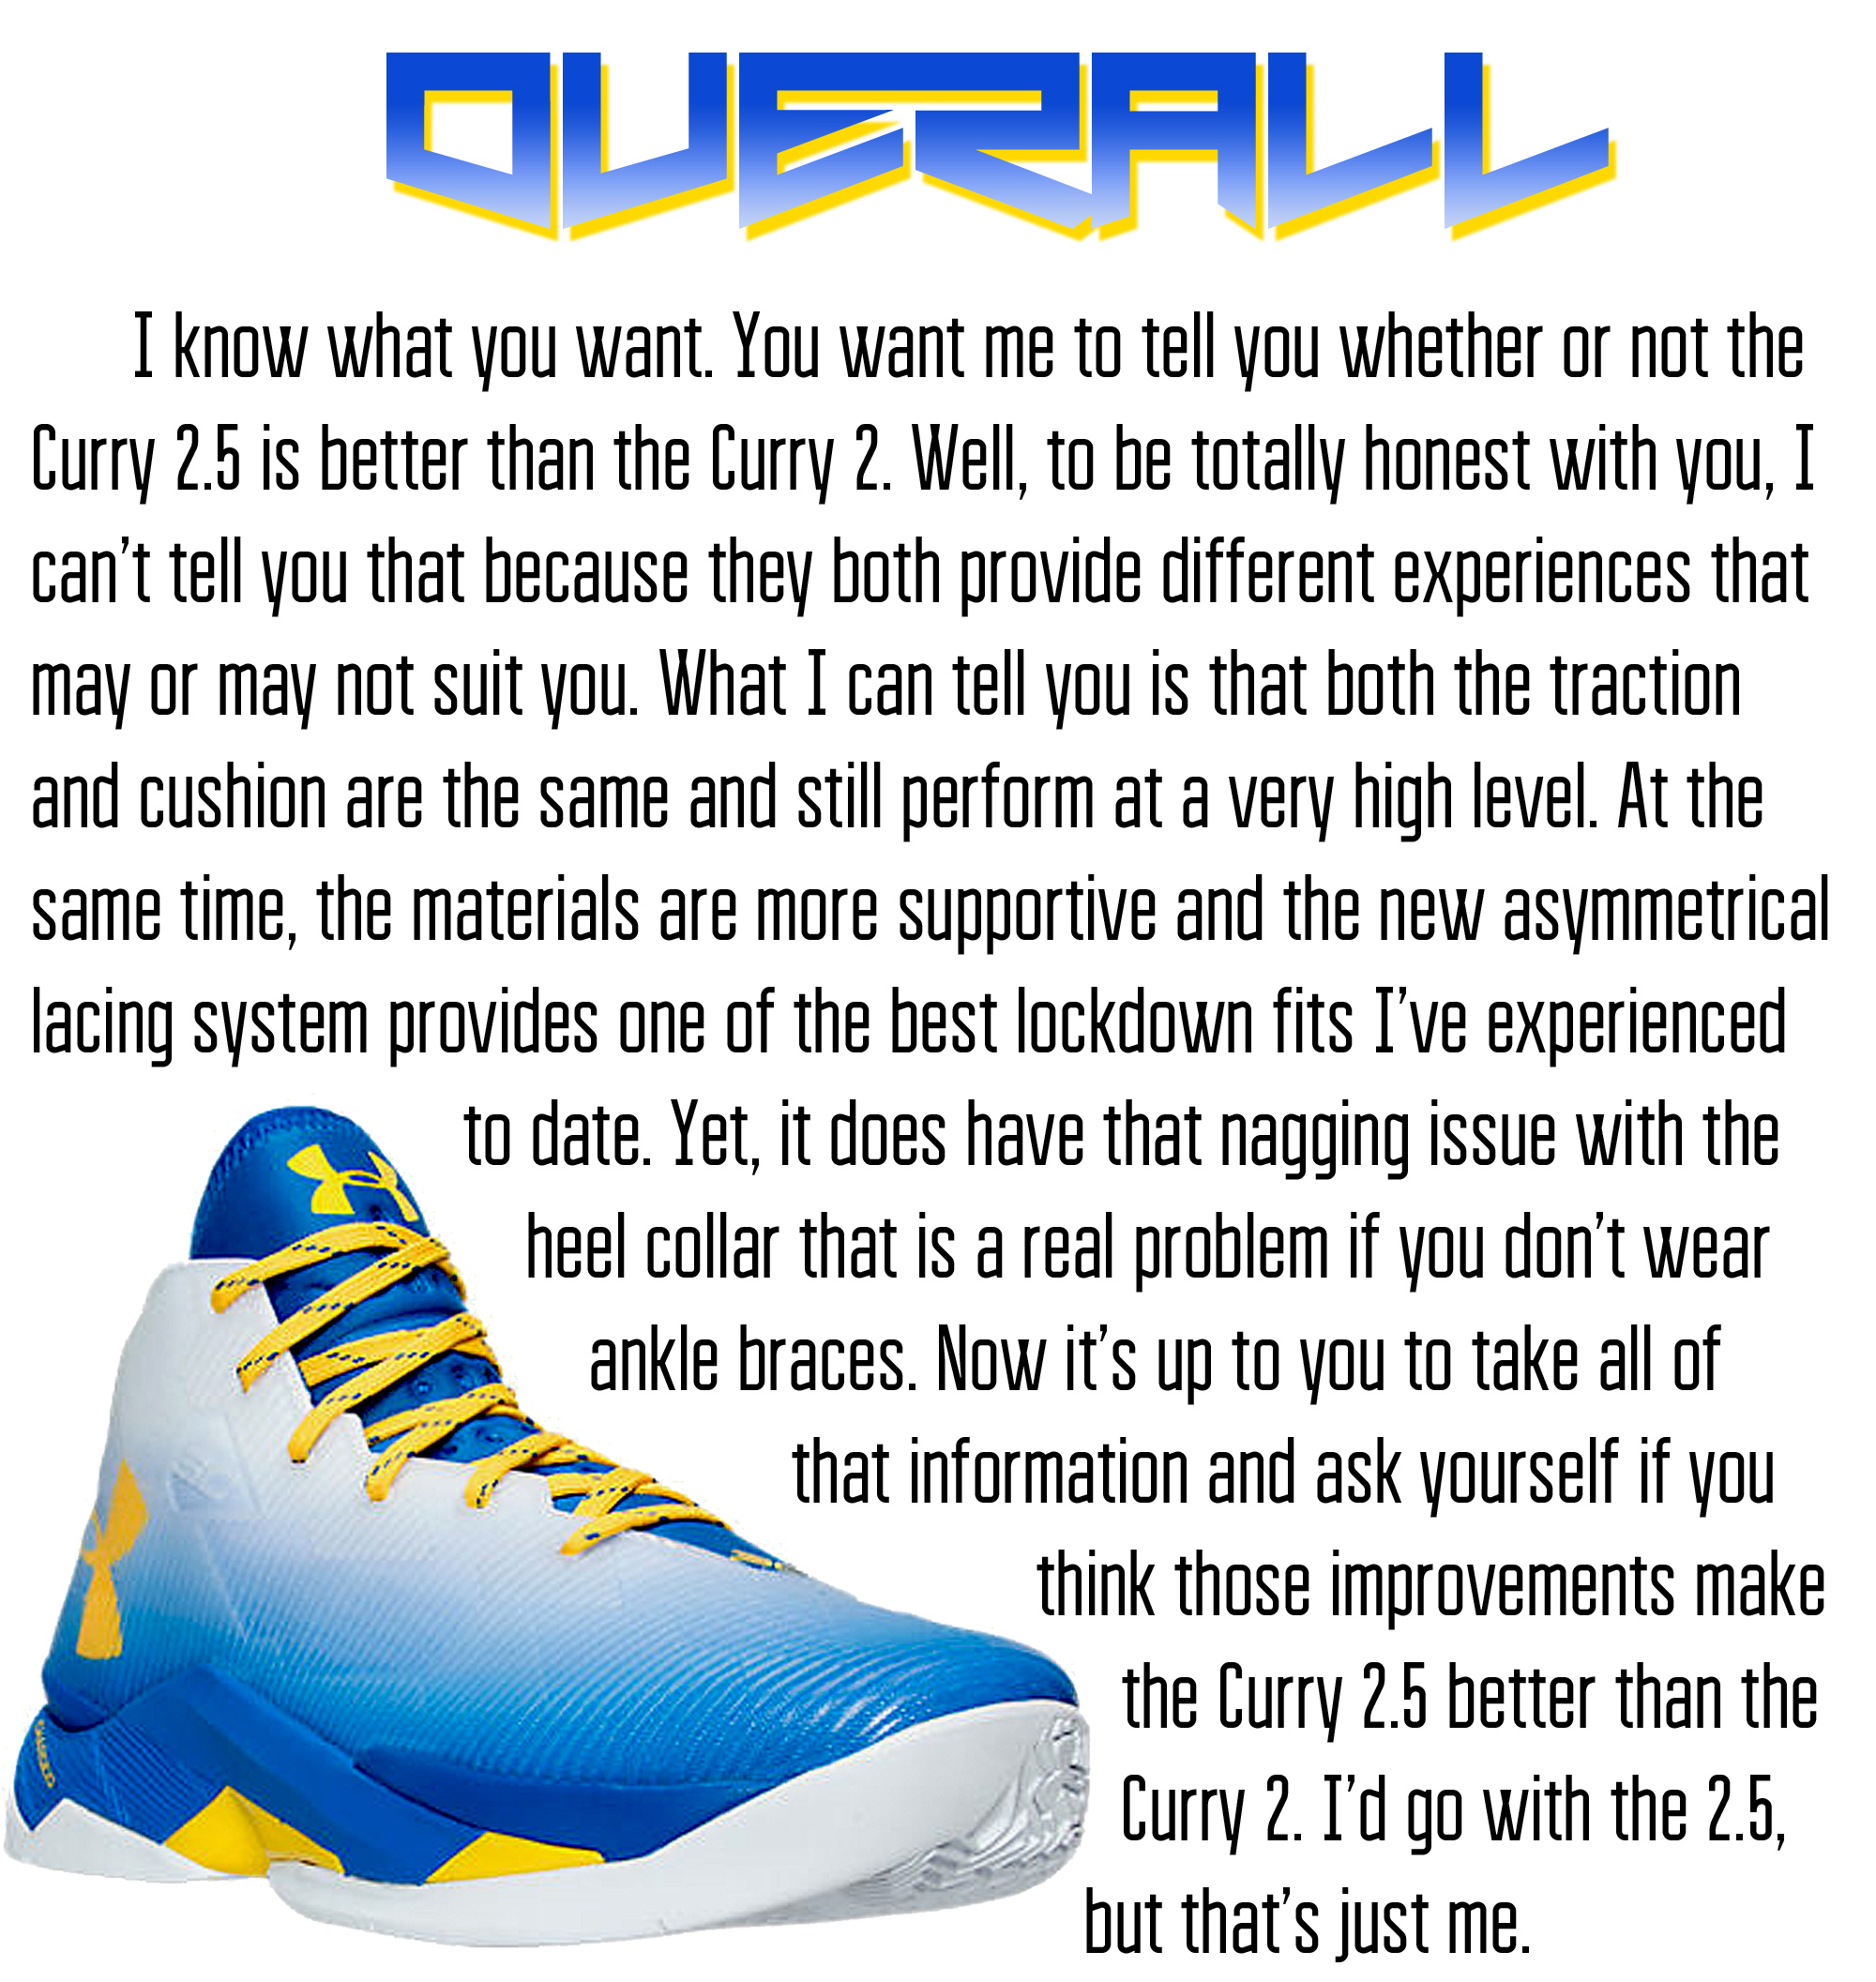 Curry 2.5 - Overall